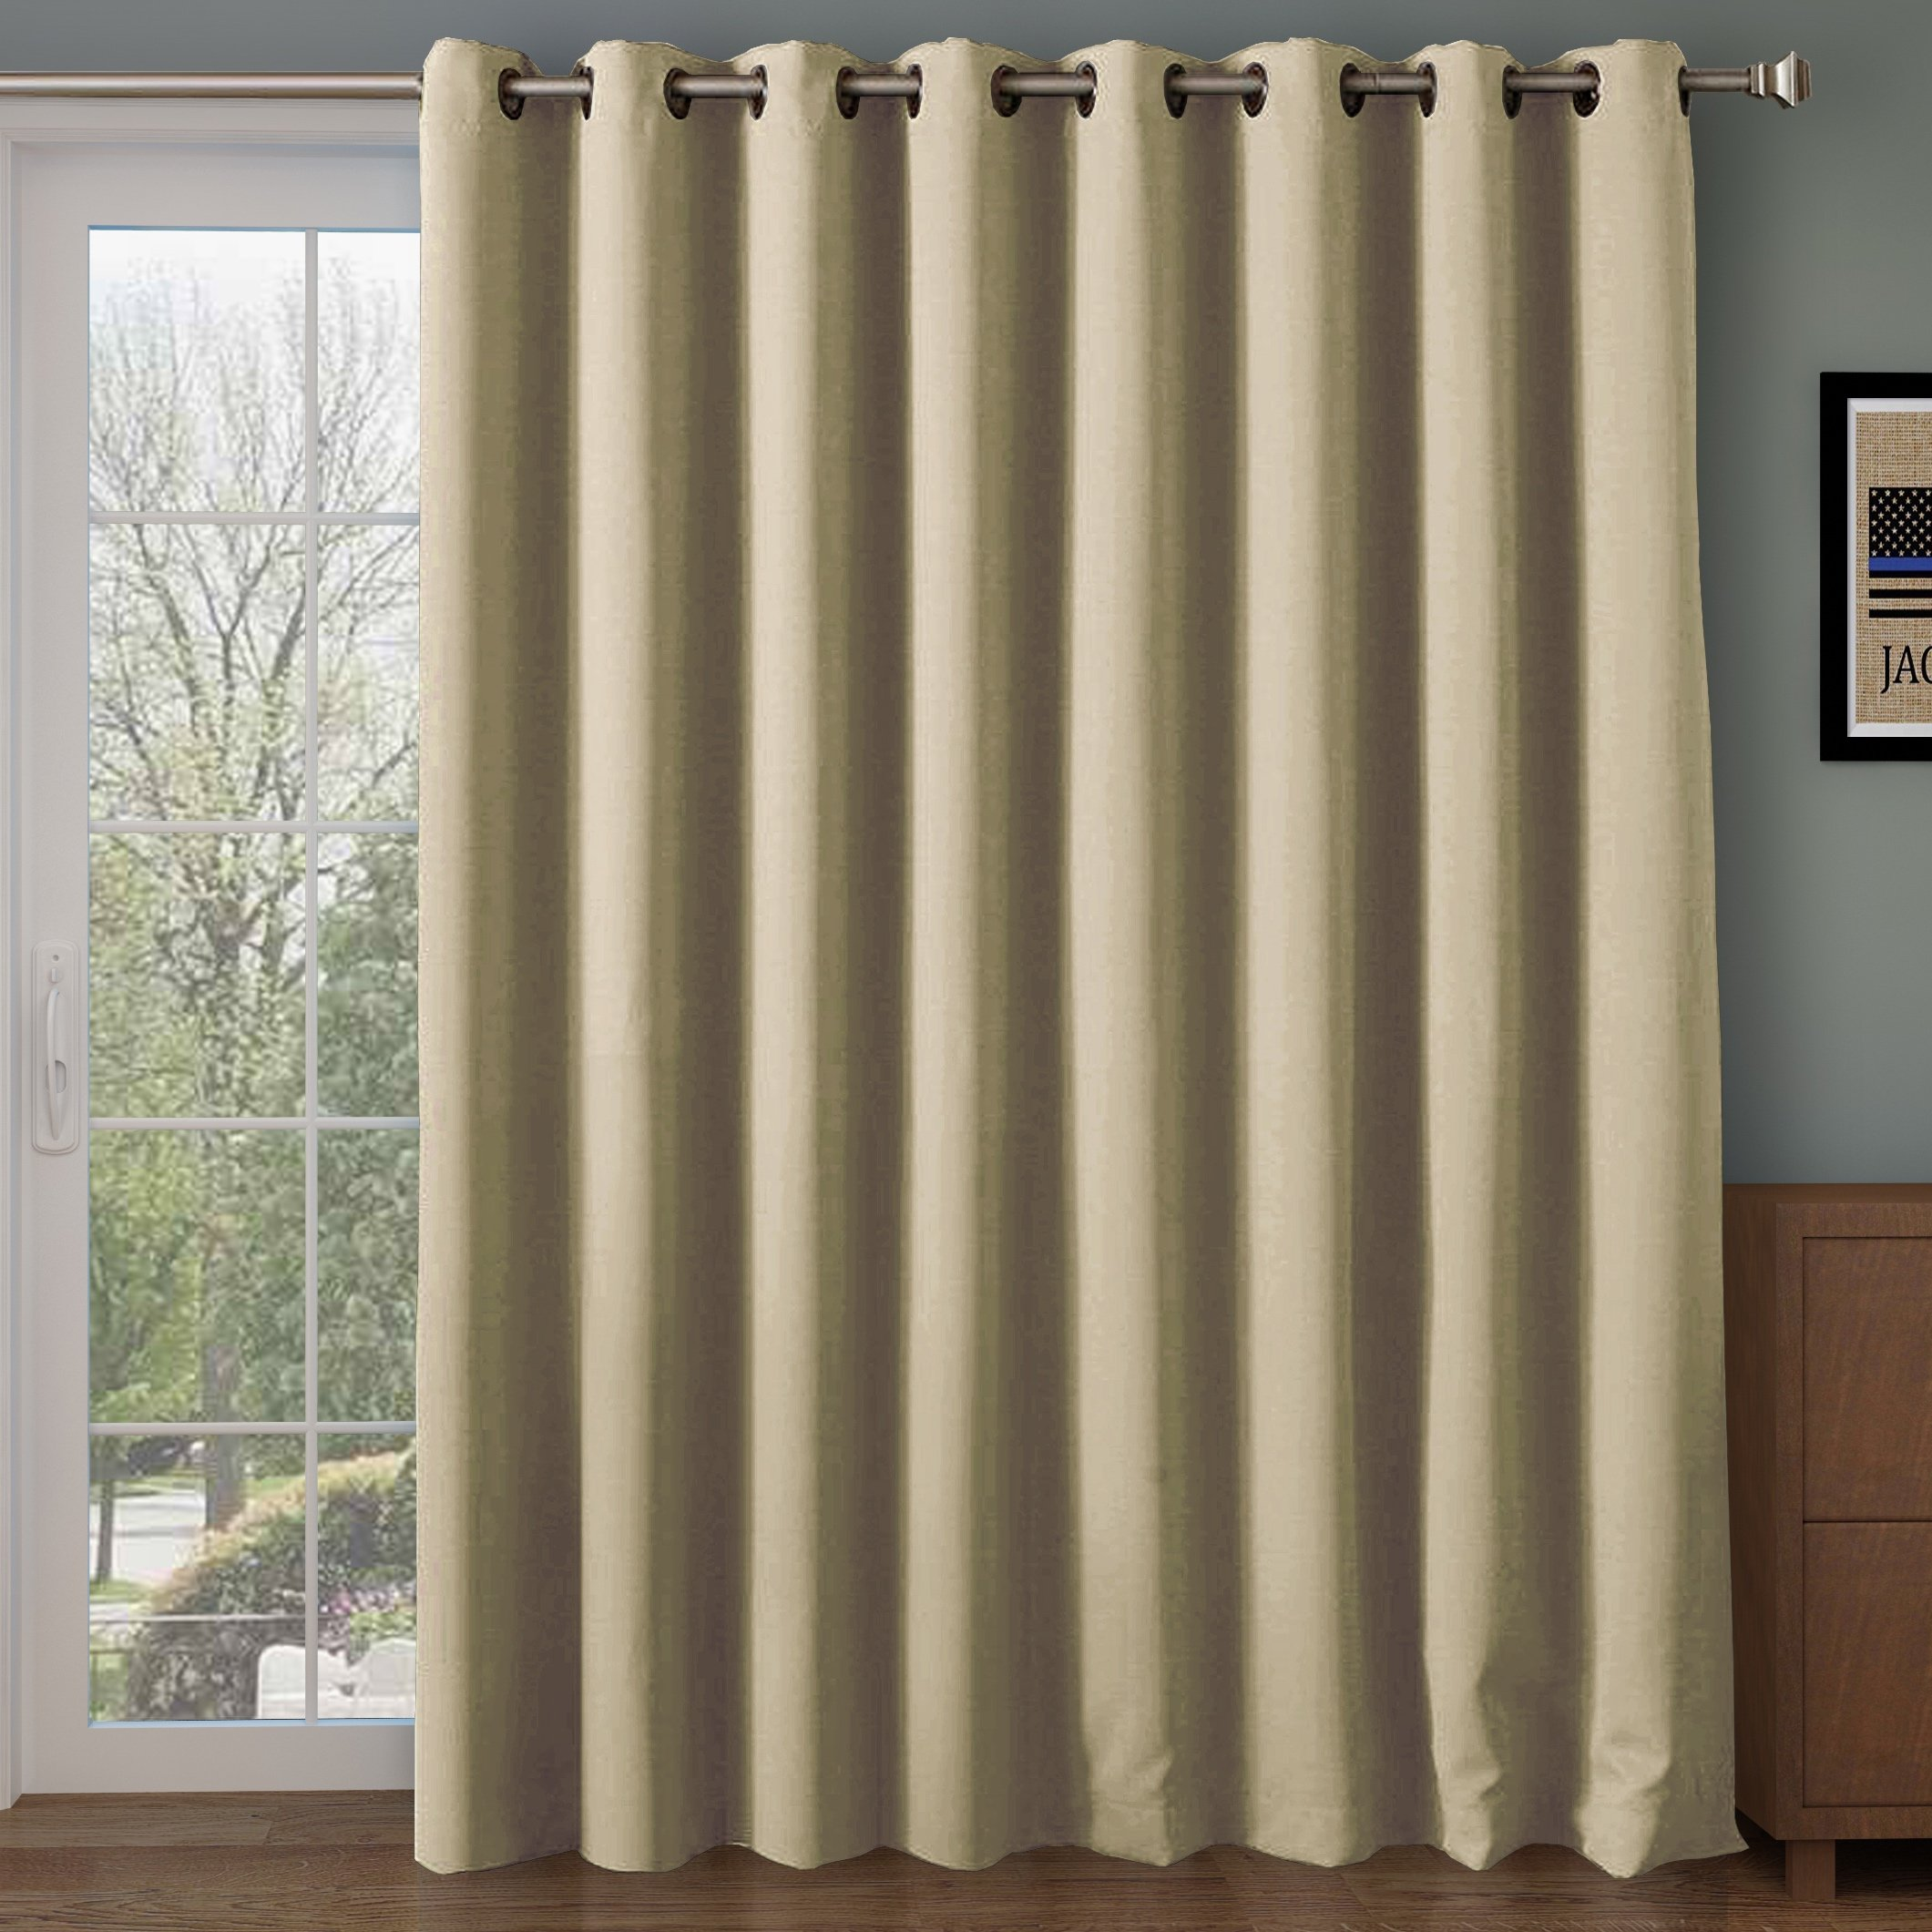 Rose Home Fashion RHF Wide Thermal Blackout-Patio Door Curtain Sliding Door Curtains & Curtains for Patio Doors: Amazon.com